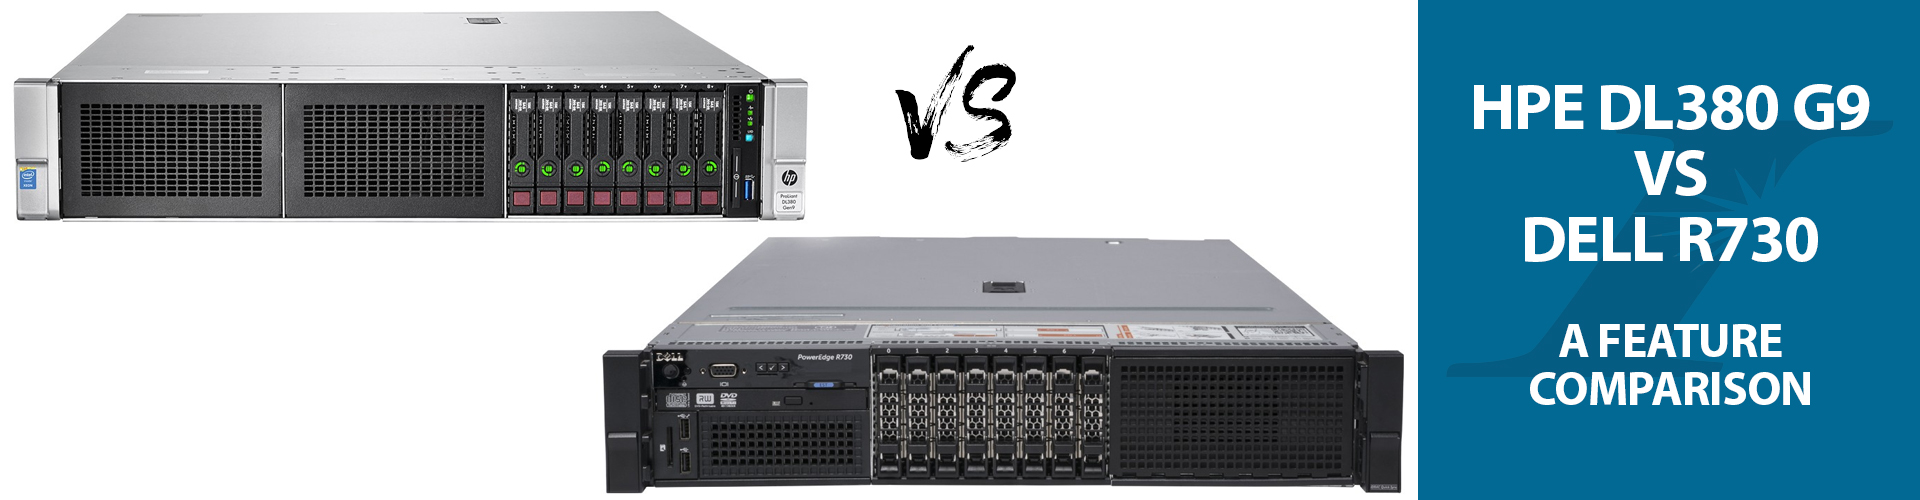 HPE DL380 G9 vs Dell R730: A Feature Comparison - Integrity